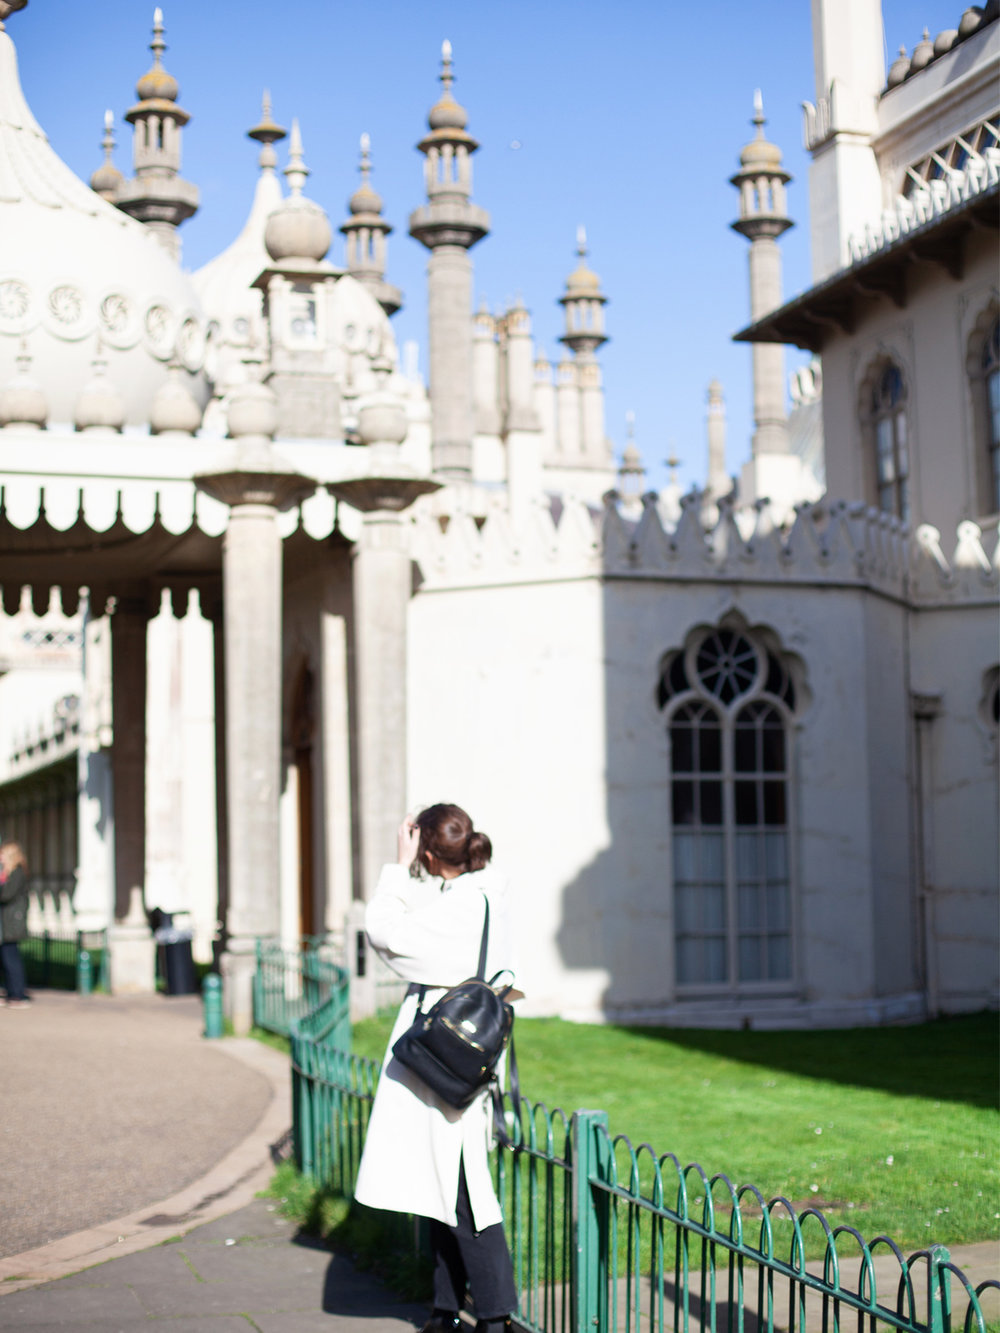 The very interesting Royal Pavilion, Brighton